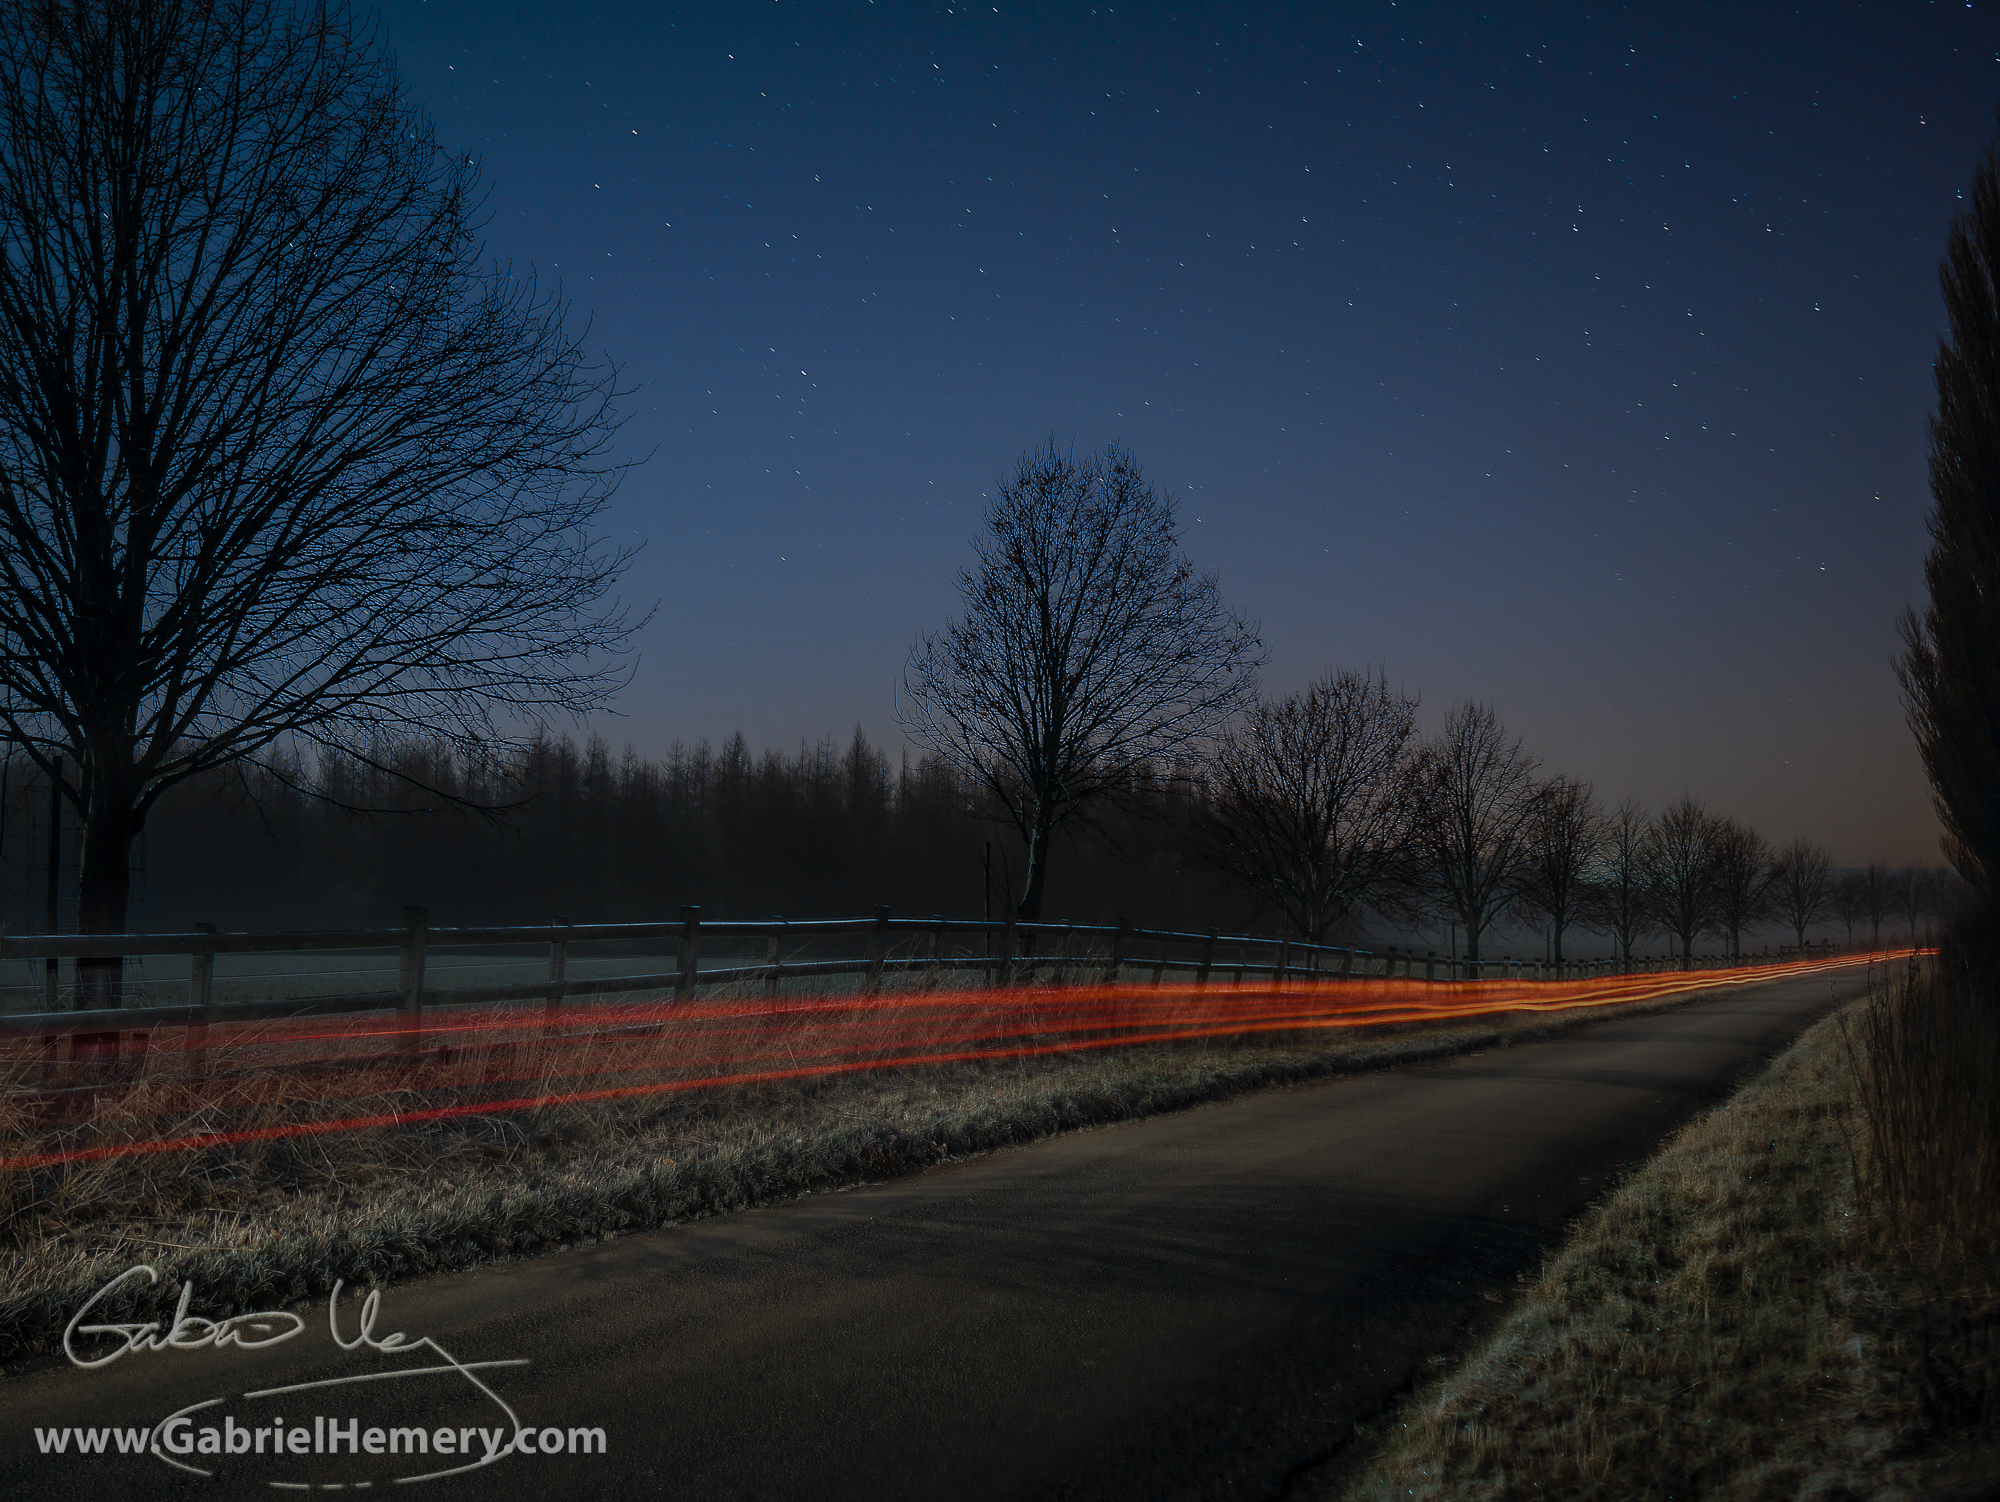 Driving to a night photography shoot - self portrait. Tree avenue and moon shadows.